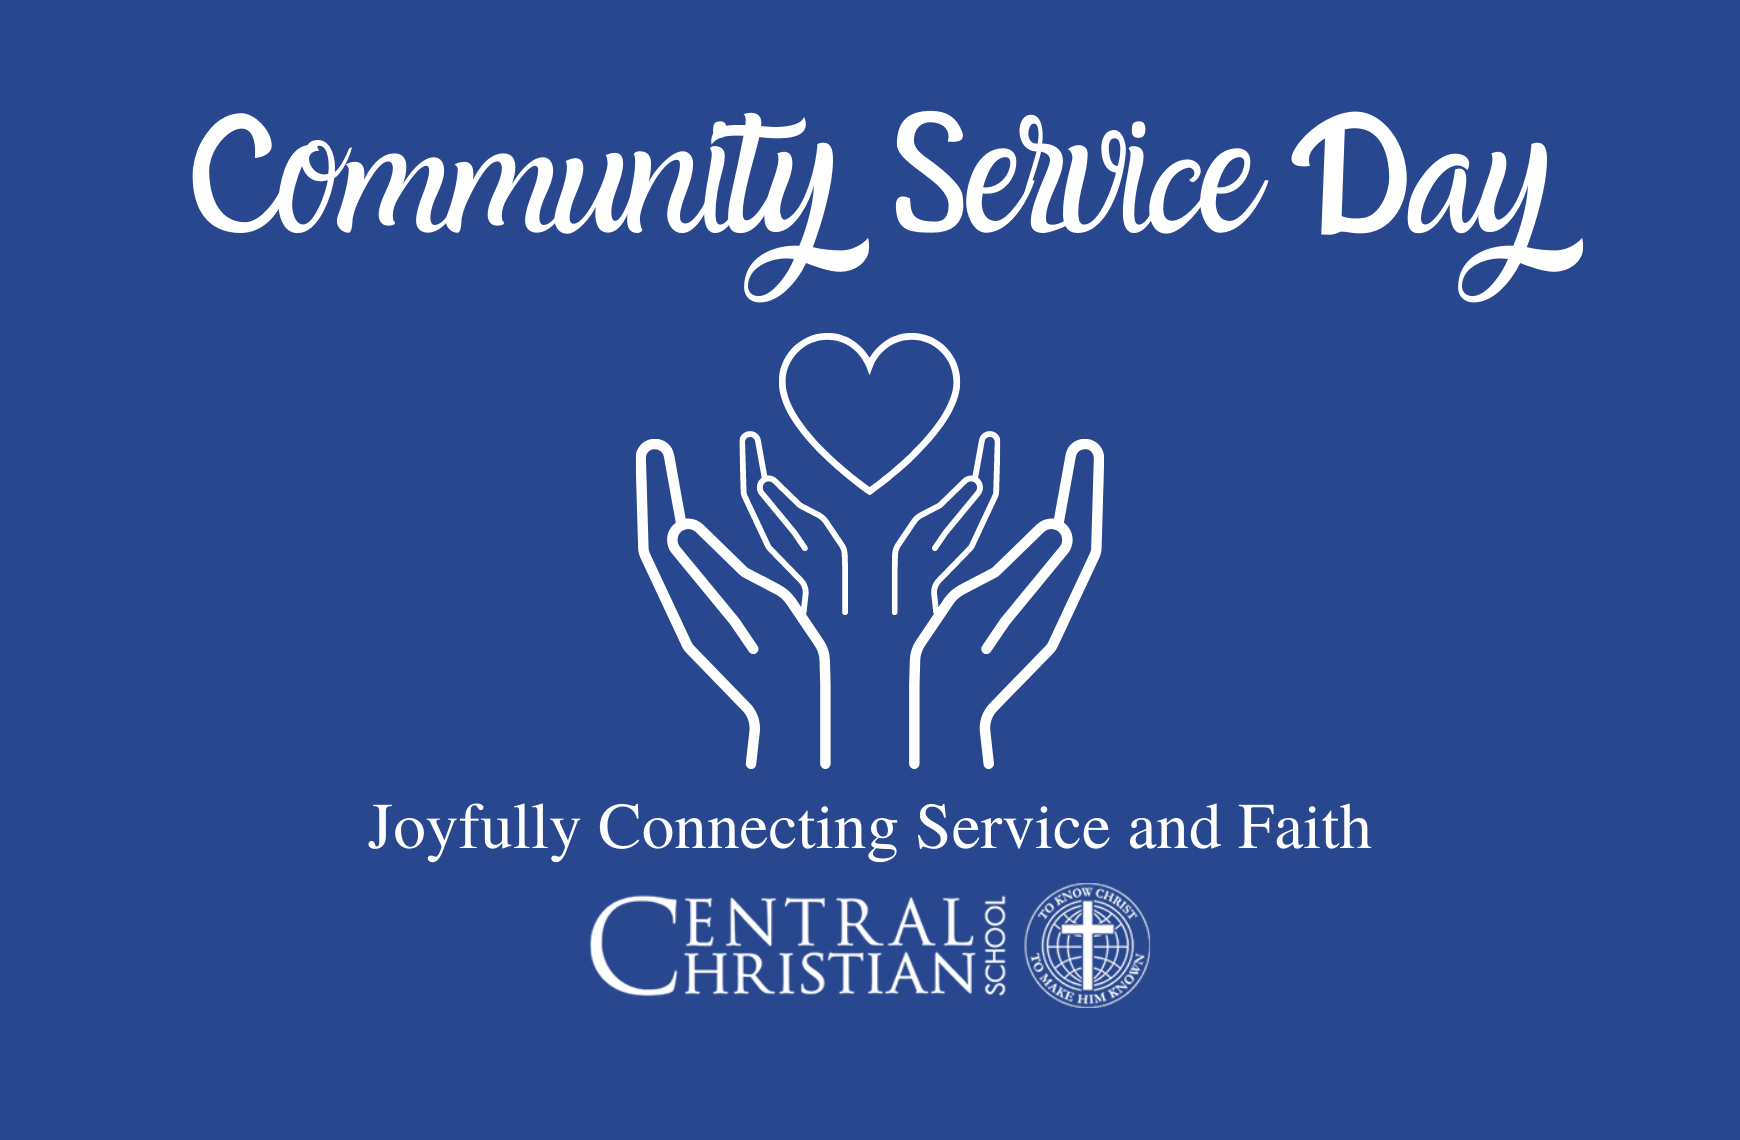 Community Service Day at Central Christian School